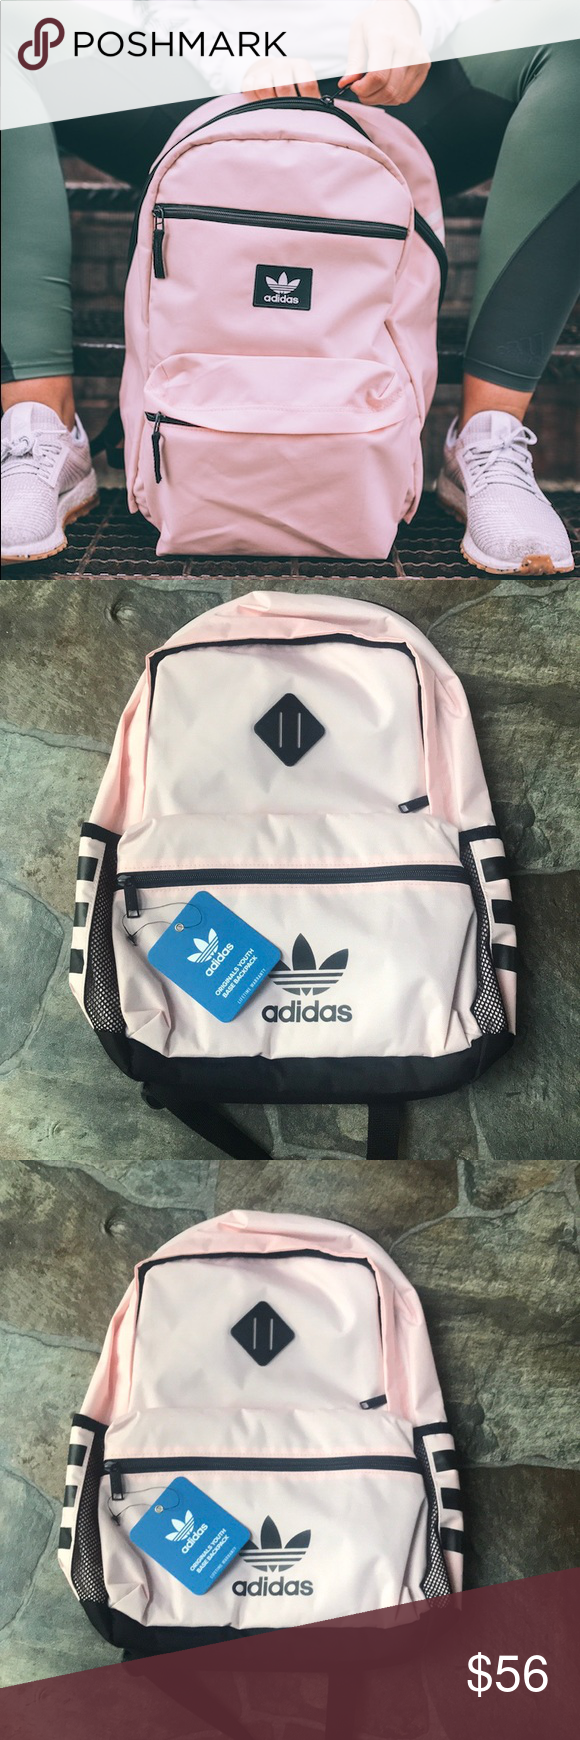 b36ee95e5554 Adidas Originals Base Backpack PINK School Bookbag ❌BESTSELLER❌ THIS WILL  SELL QUICK❌ Adidas Originals Youth Base Backpack Black White Unixex School  ...